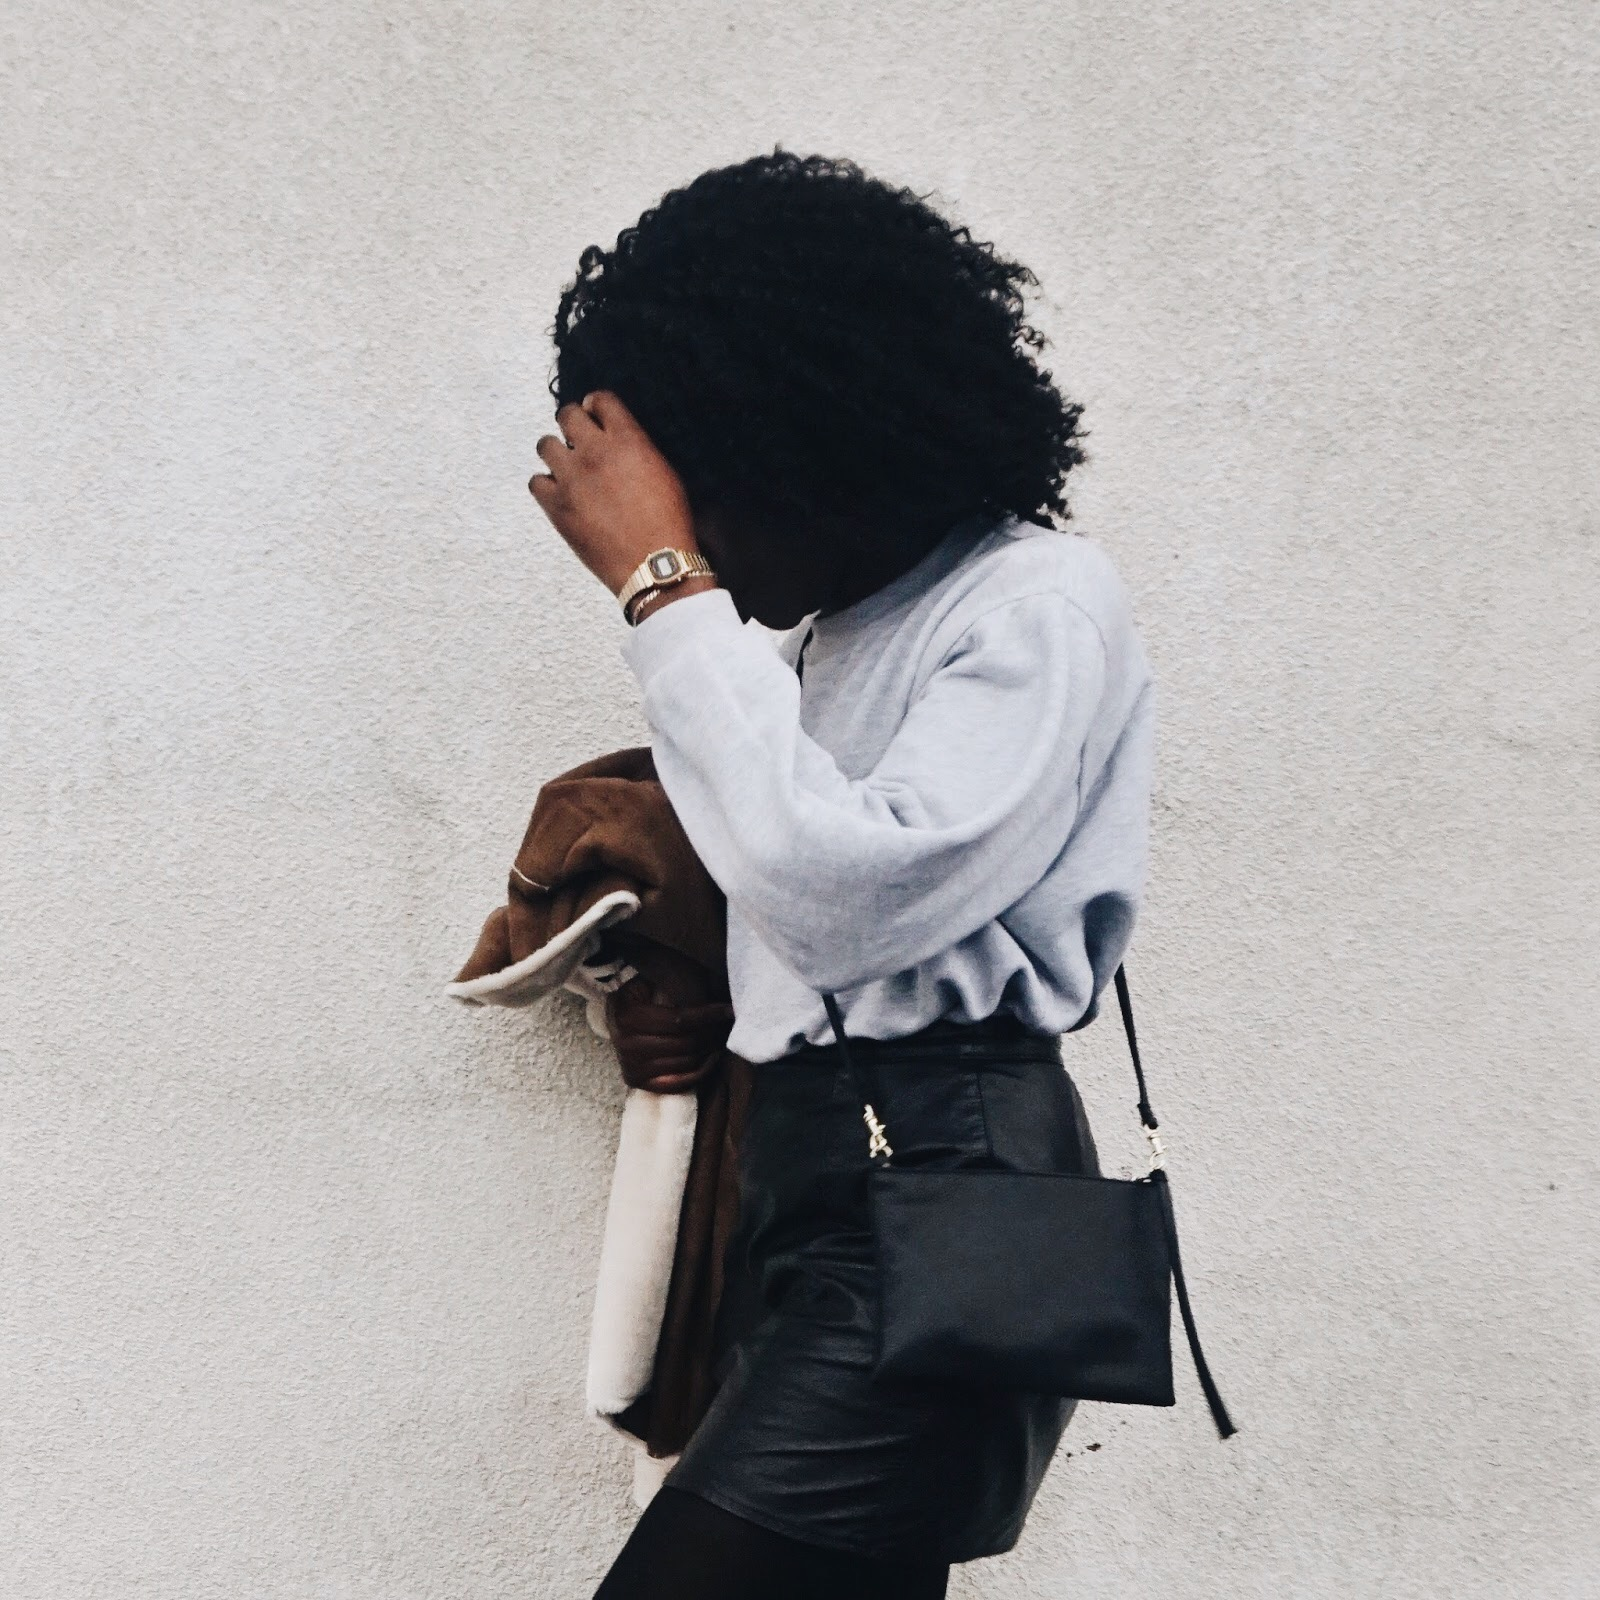 OOTD | SHEARLING COAT FOR A WINDY DAY